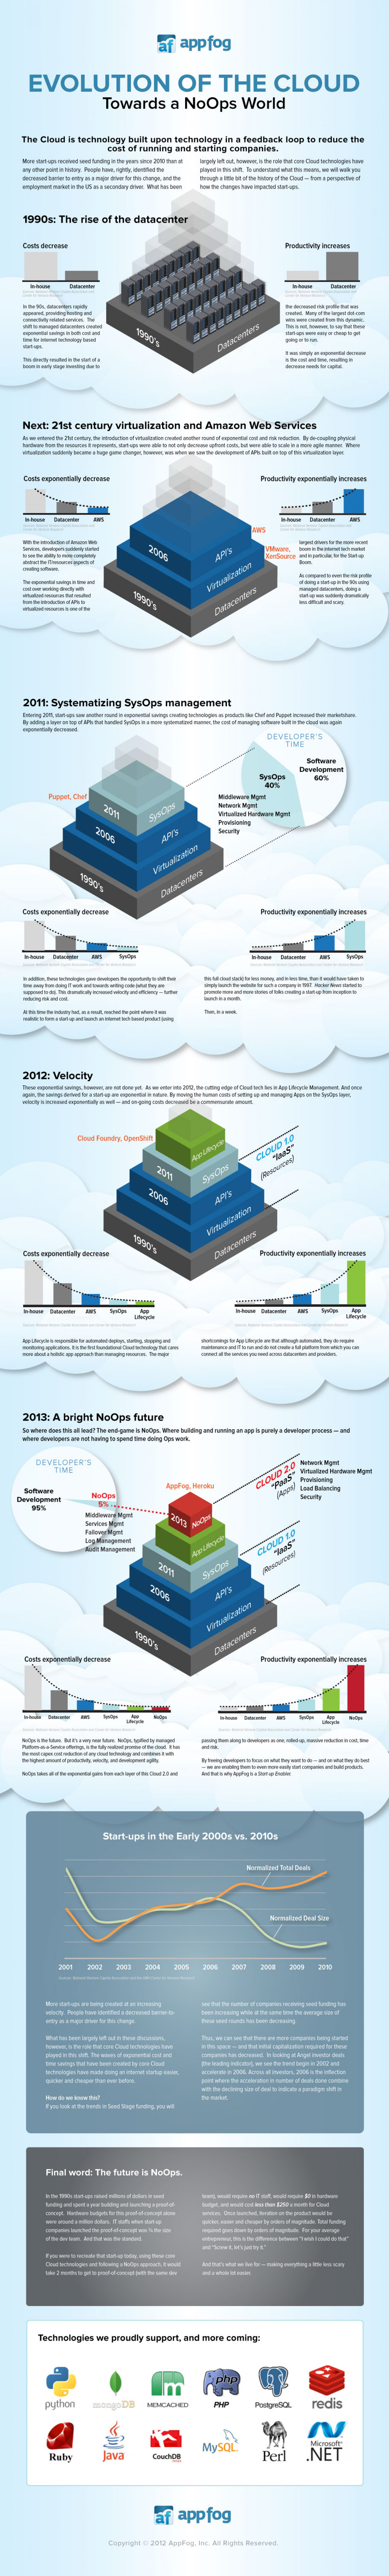 Evolution of the Cloud Infographic